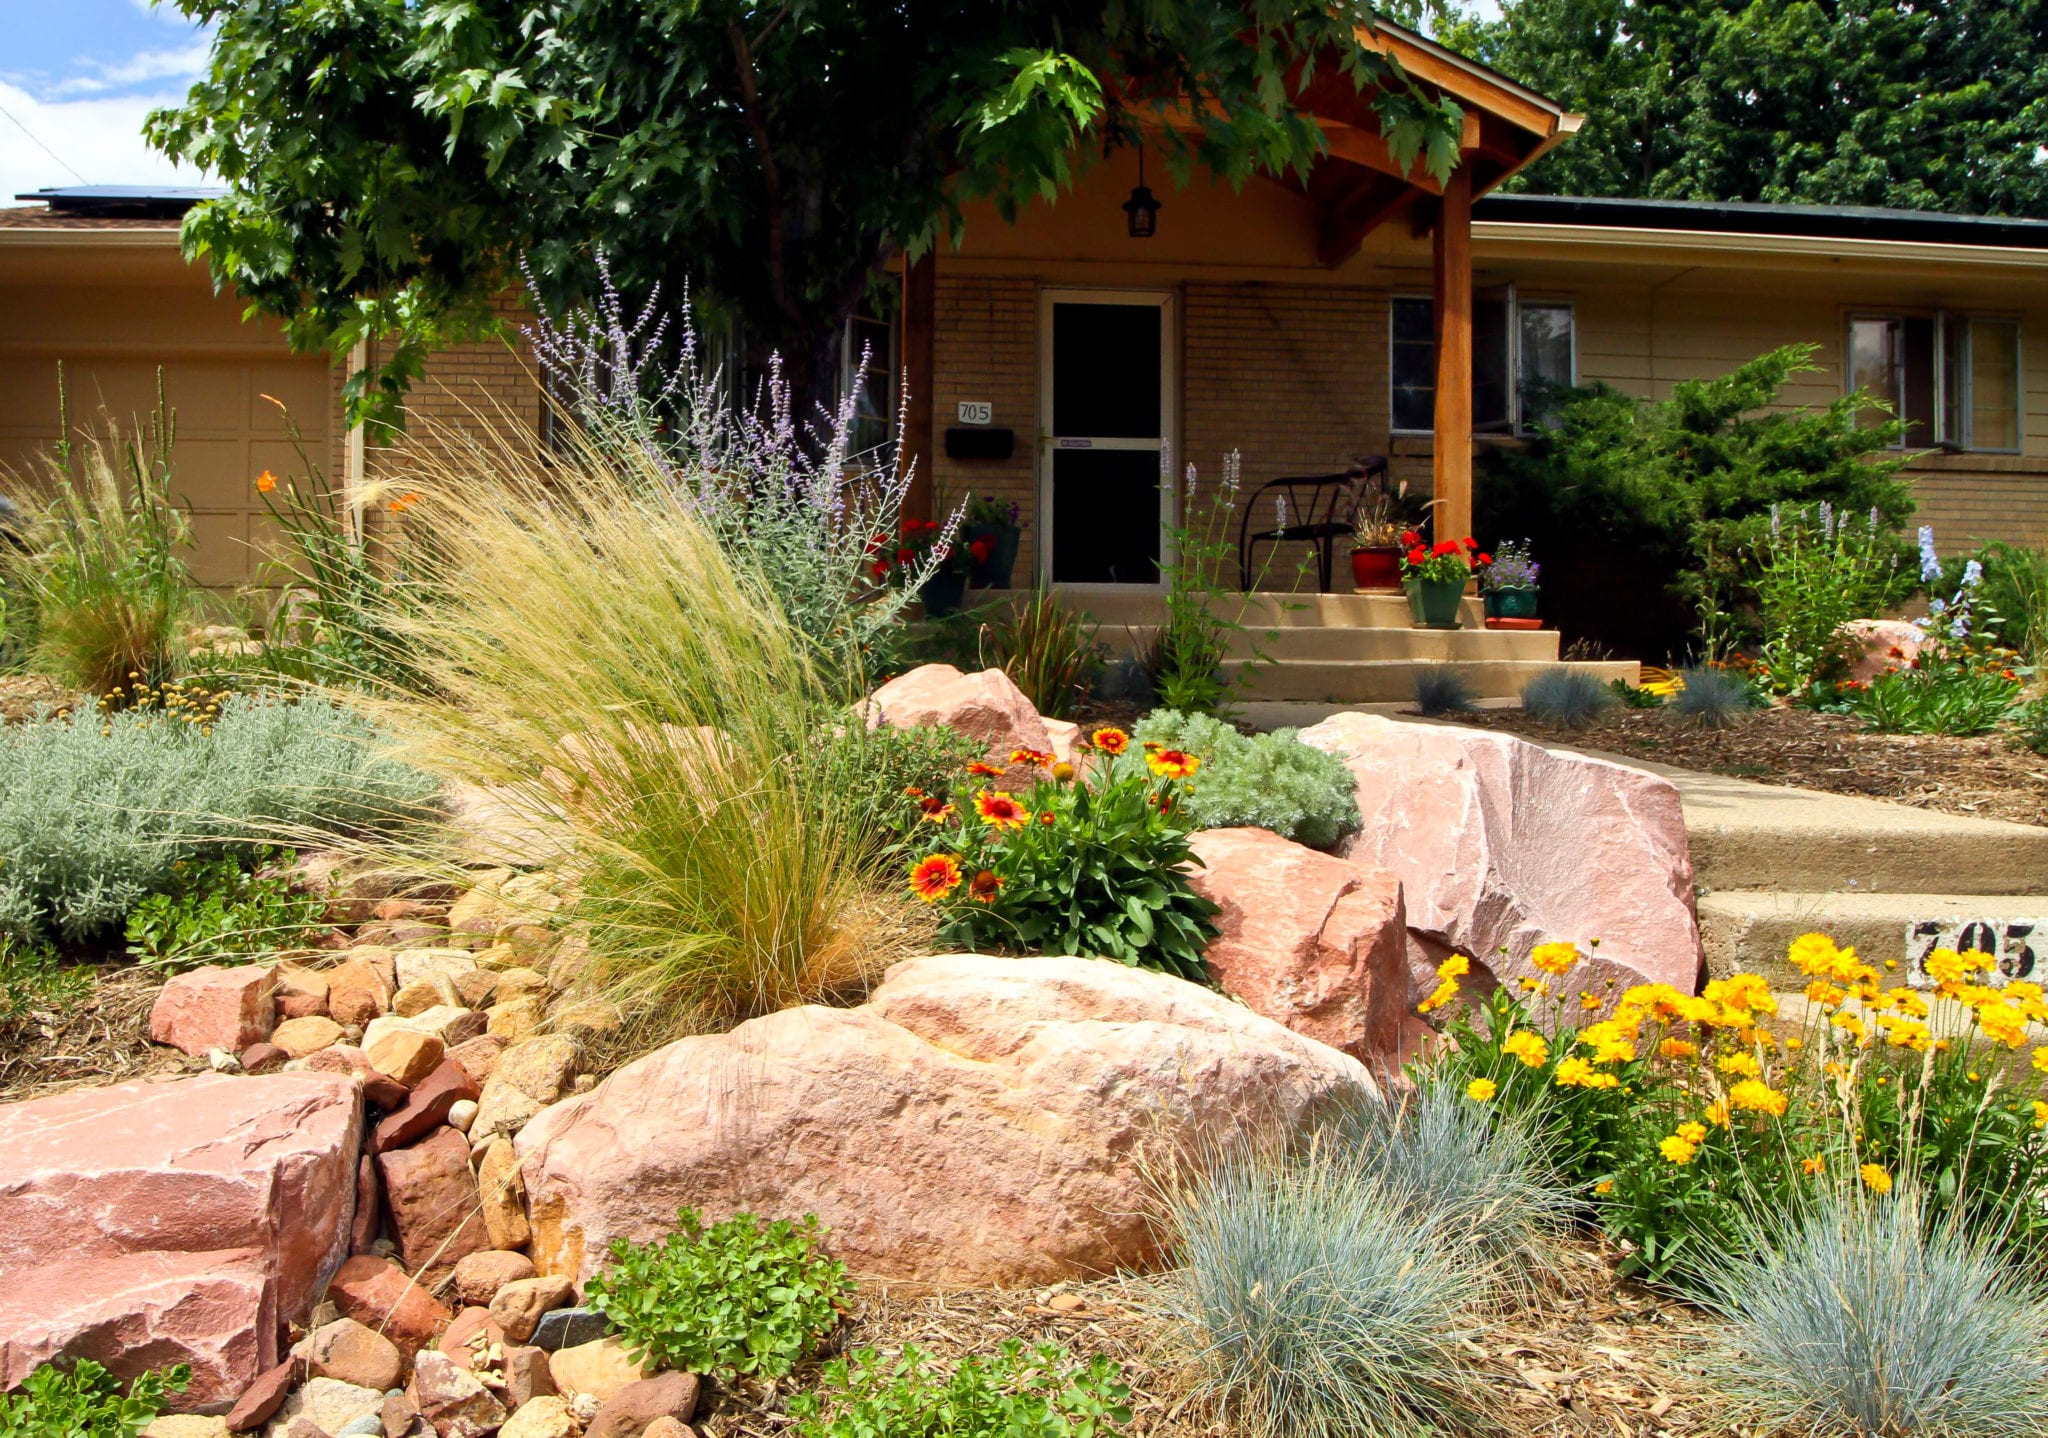 xeriscaping Archives - Ecoscape Design on texas rock garden designs, desert rock garden designs, perennials rock garden designs, succulent rock garden designs, contemporary rock garden designs, japanese rock garden designs, zen rock garden designs, cottage rock garden designs, plants rock garden designs, modern rock garden designs, easy rock garden designs, shade rock garden designs,